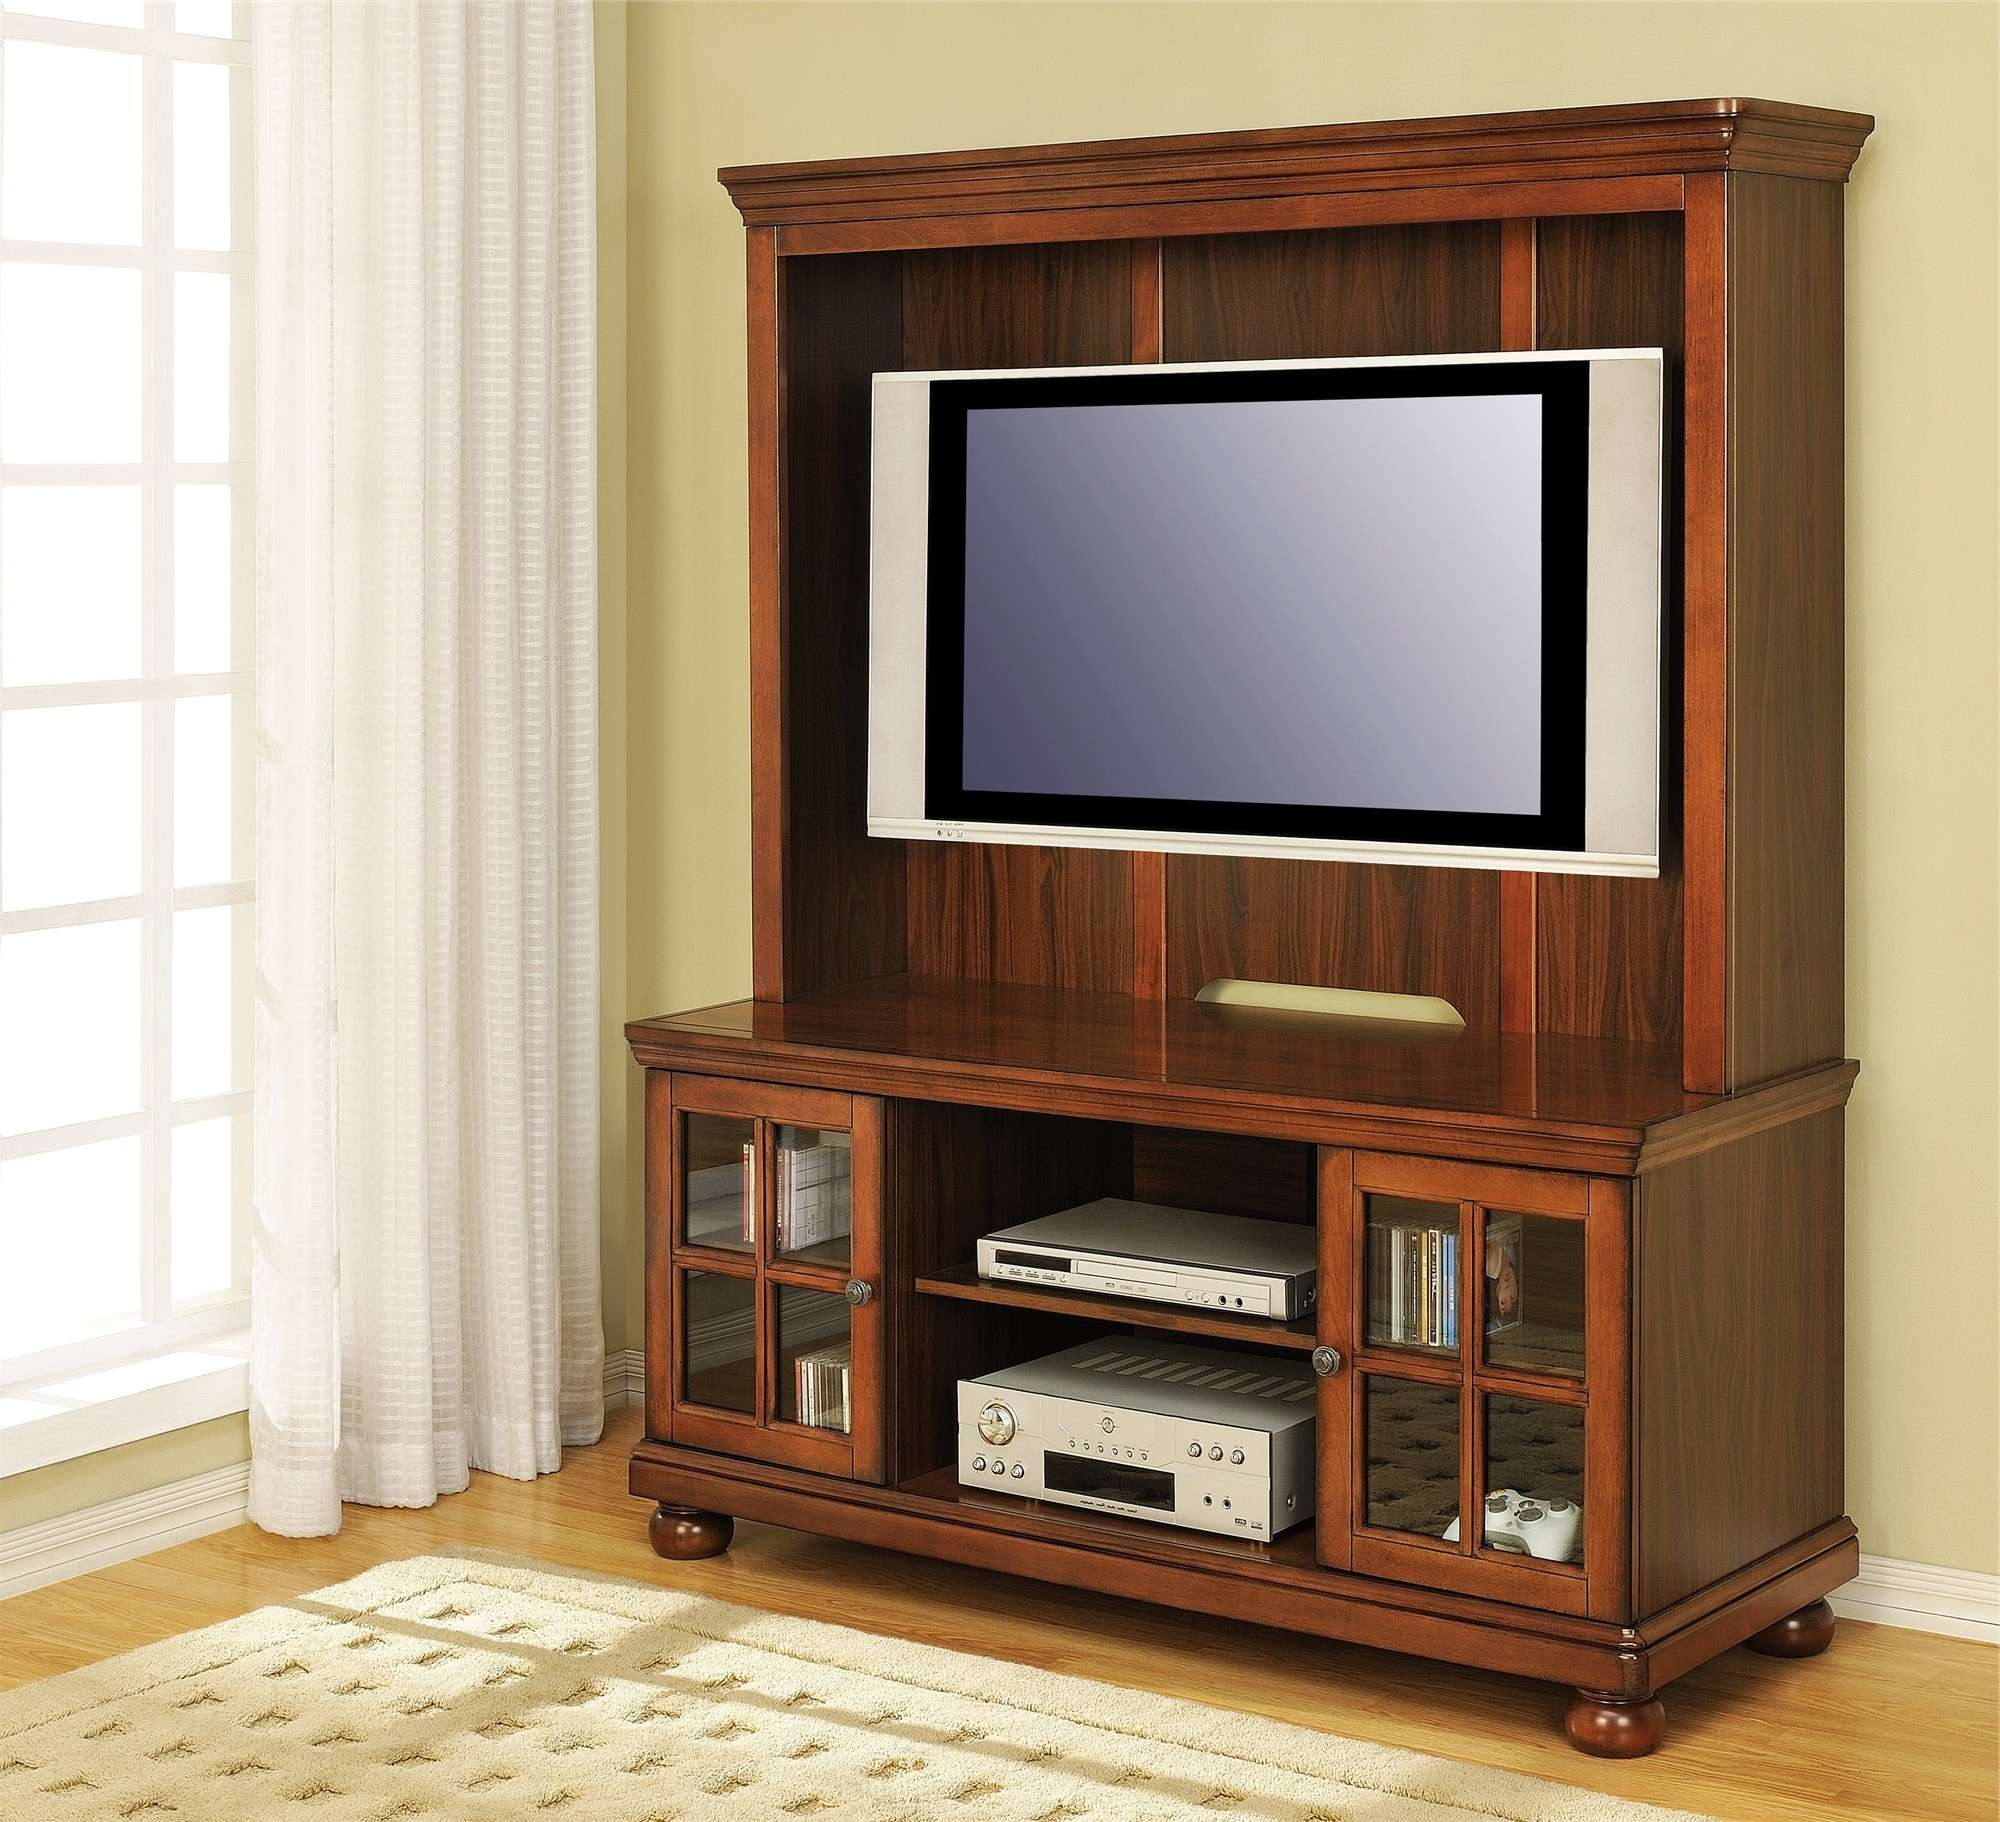 Corner Oak Tv Cabinets For Flat Screens With Doors • Corner Cabinets Inside Oak Tv Cabinets For Flat Screens (View 5 of 20)